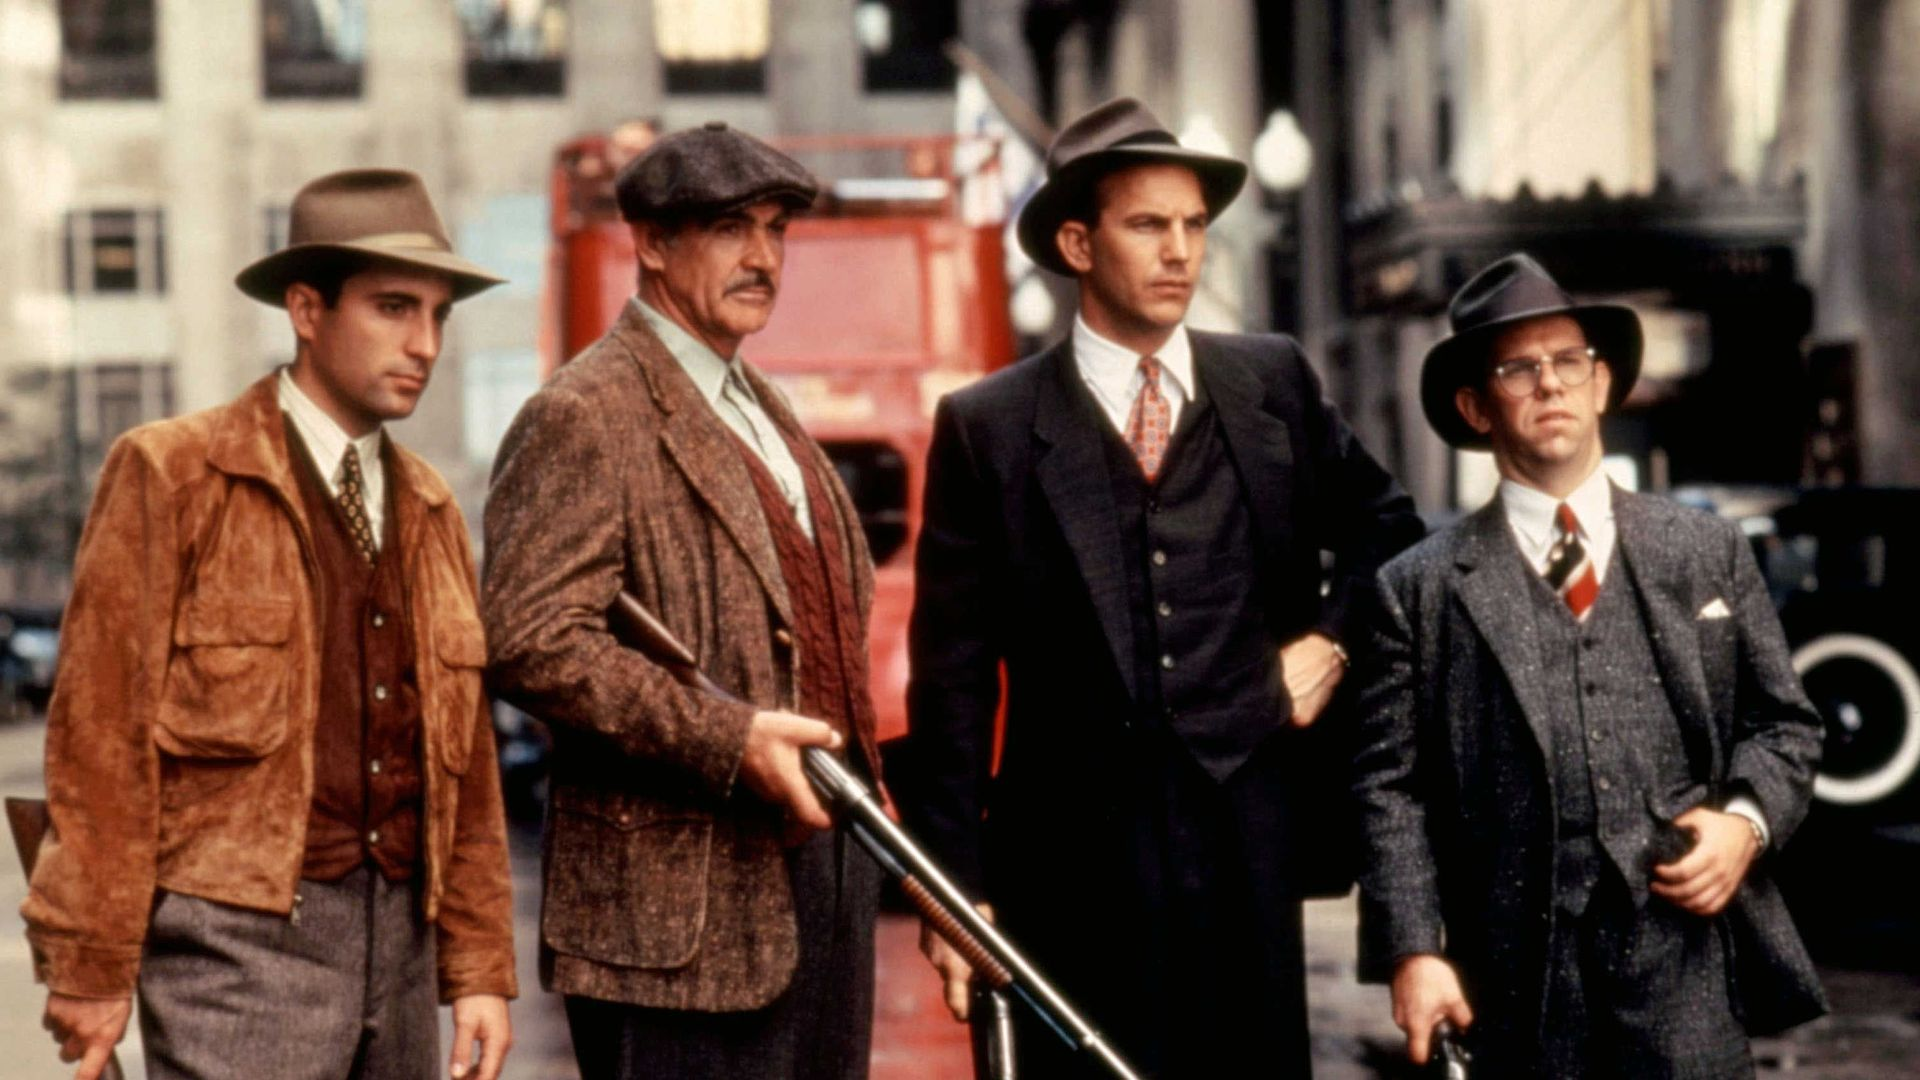 THE UNTOUCHABLES, Andy Garcia, Sean Connery, Kevin Costner, Charles Martin Smith, 1987.